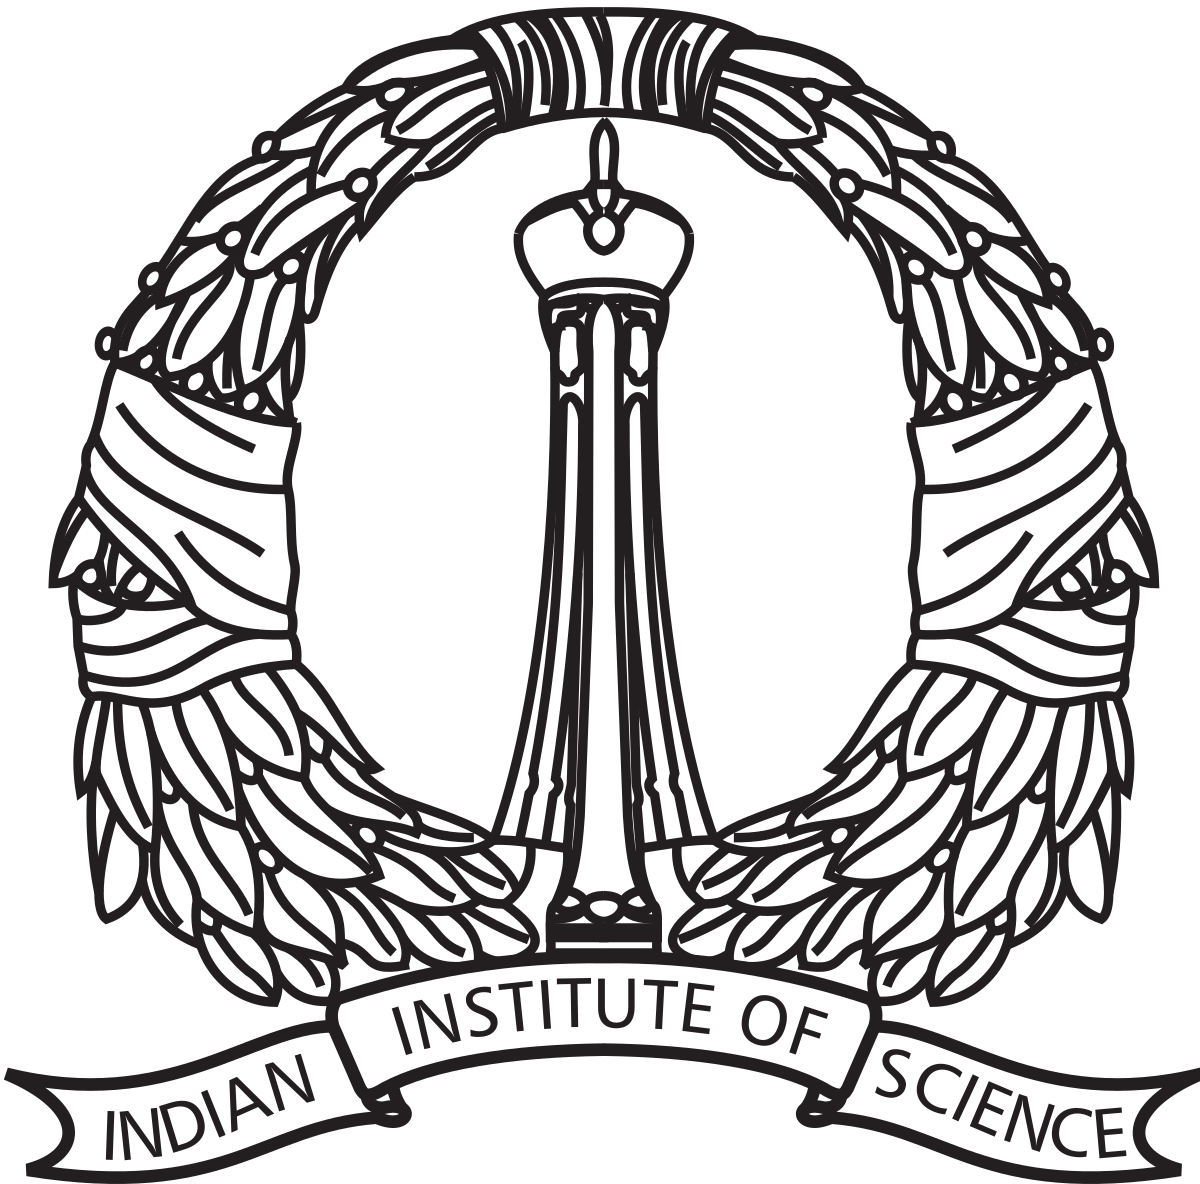 Indian Institute of Science Logo